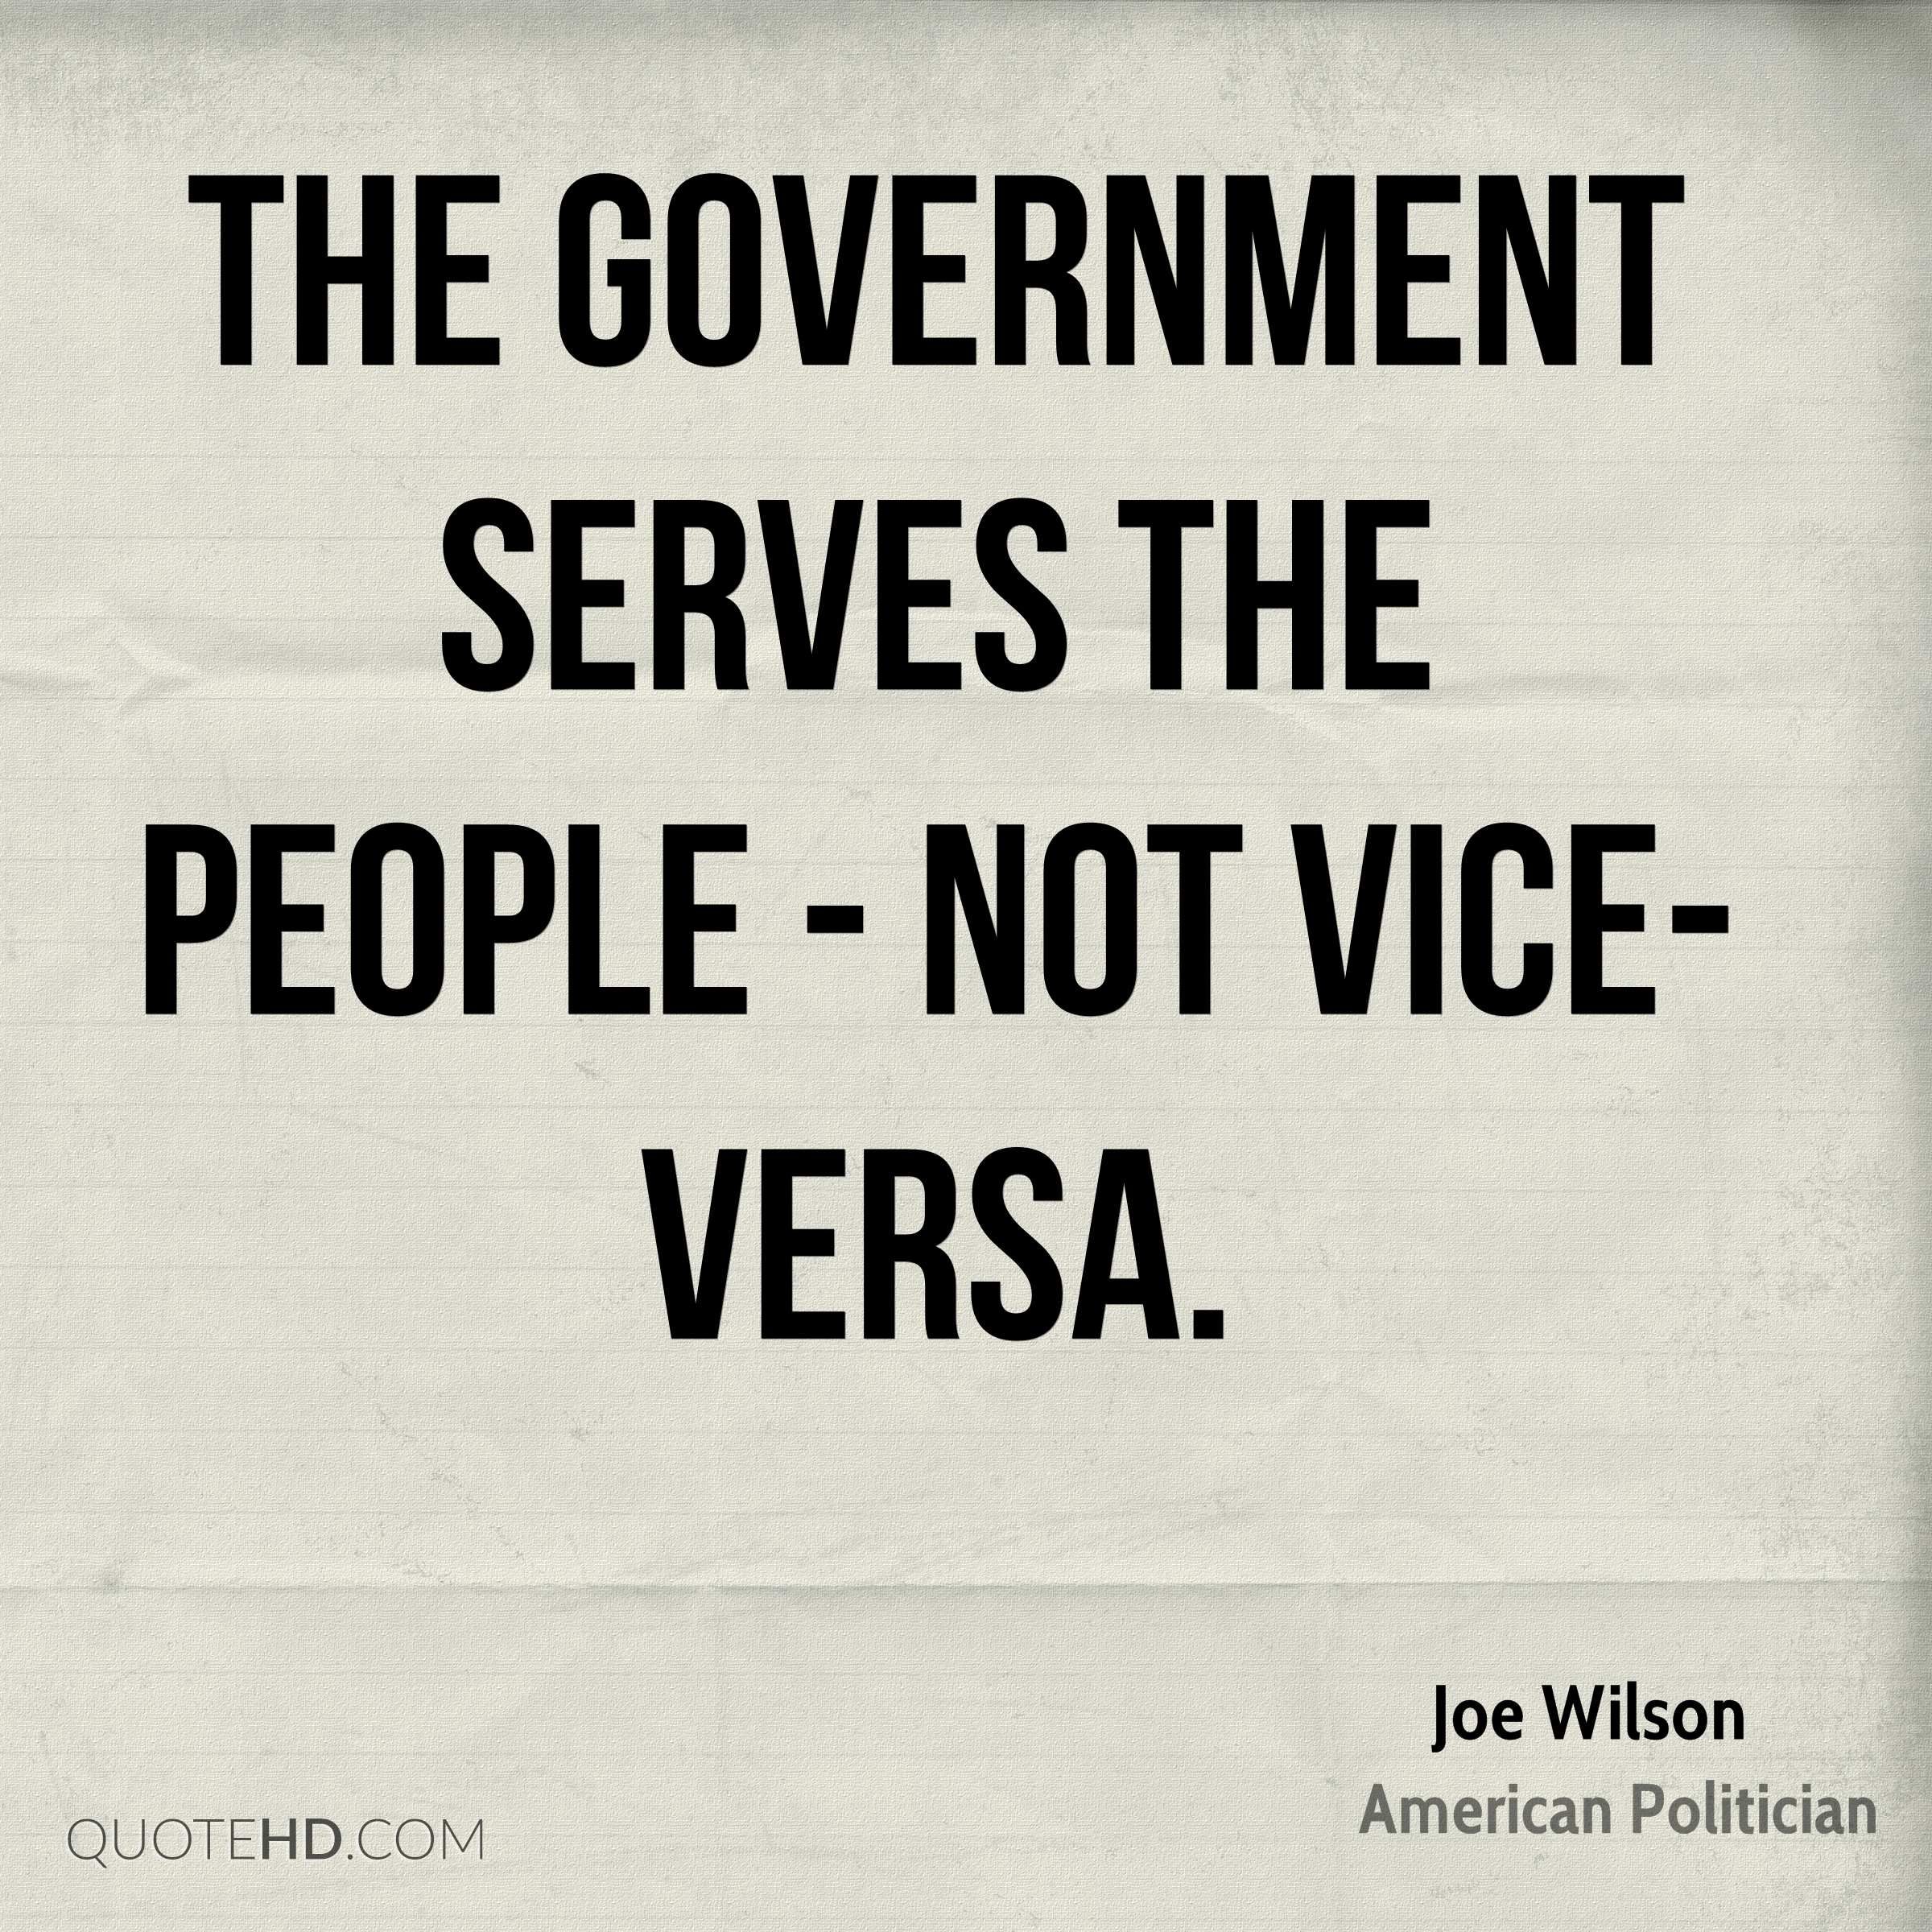 The government serves the people - not vice-versa.